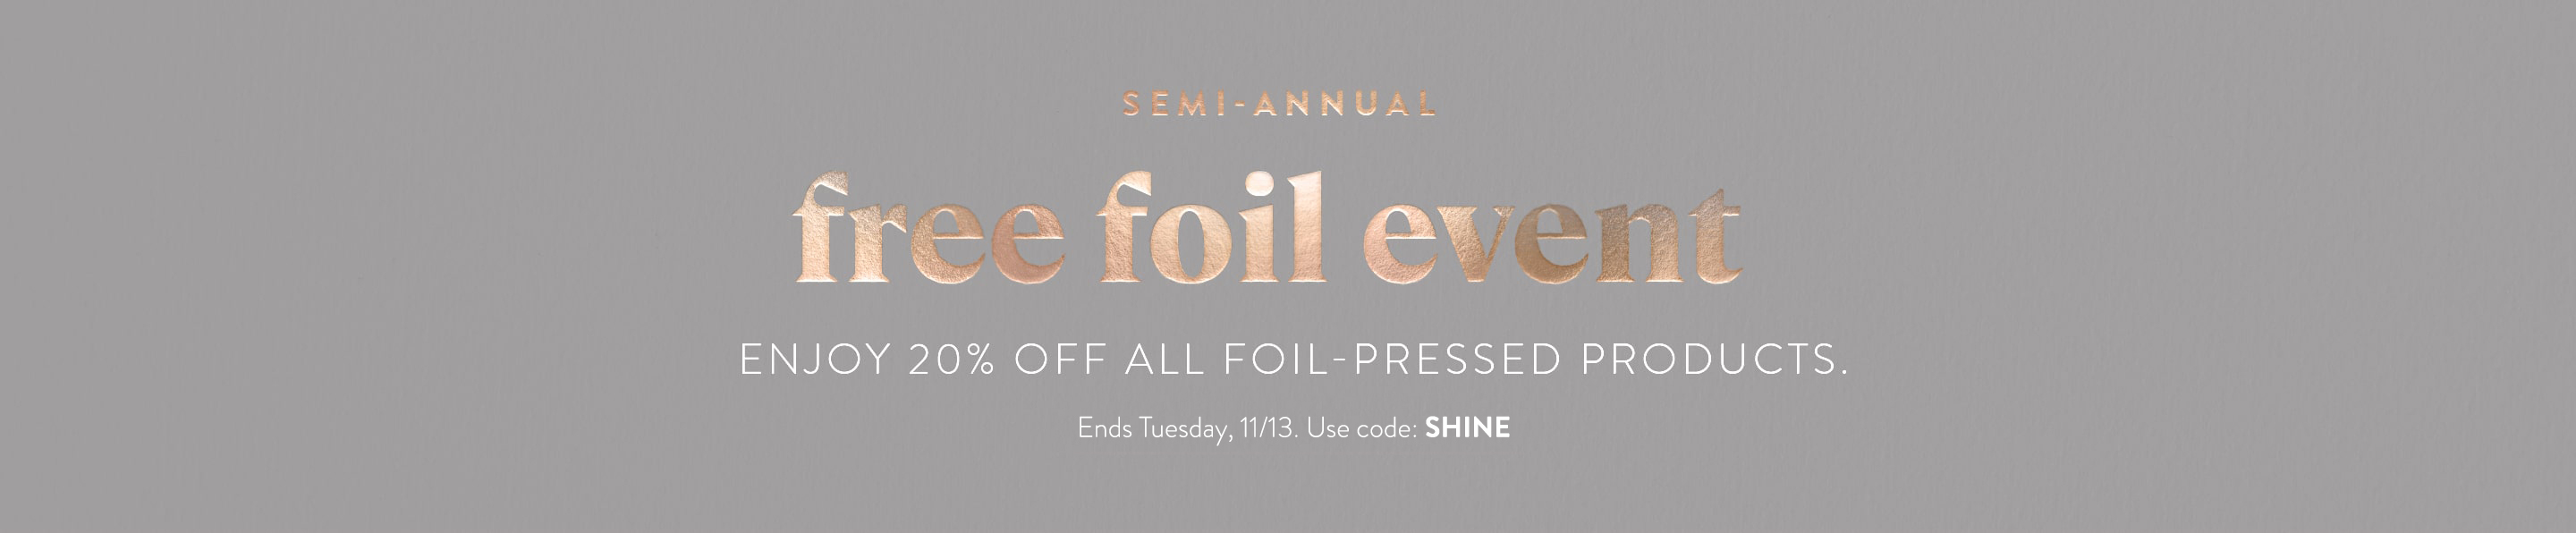 Semi-Annual Free Foil Event